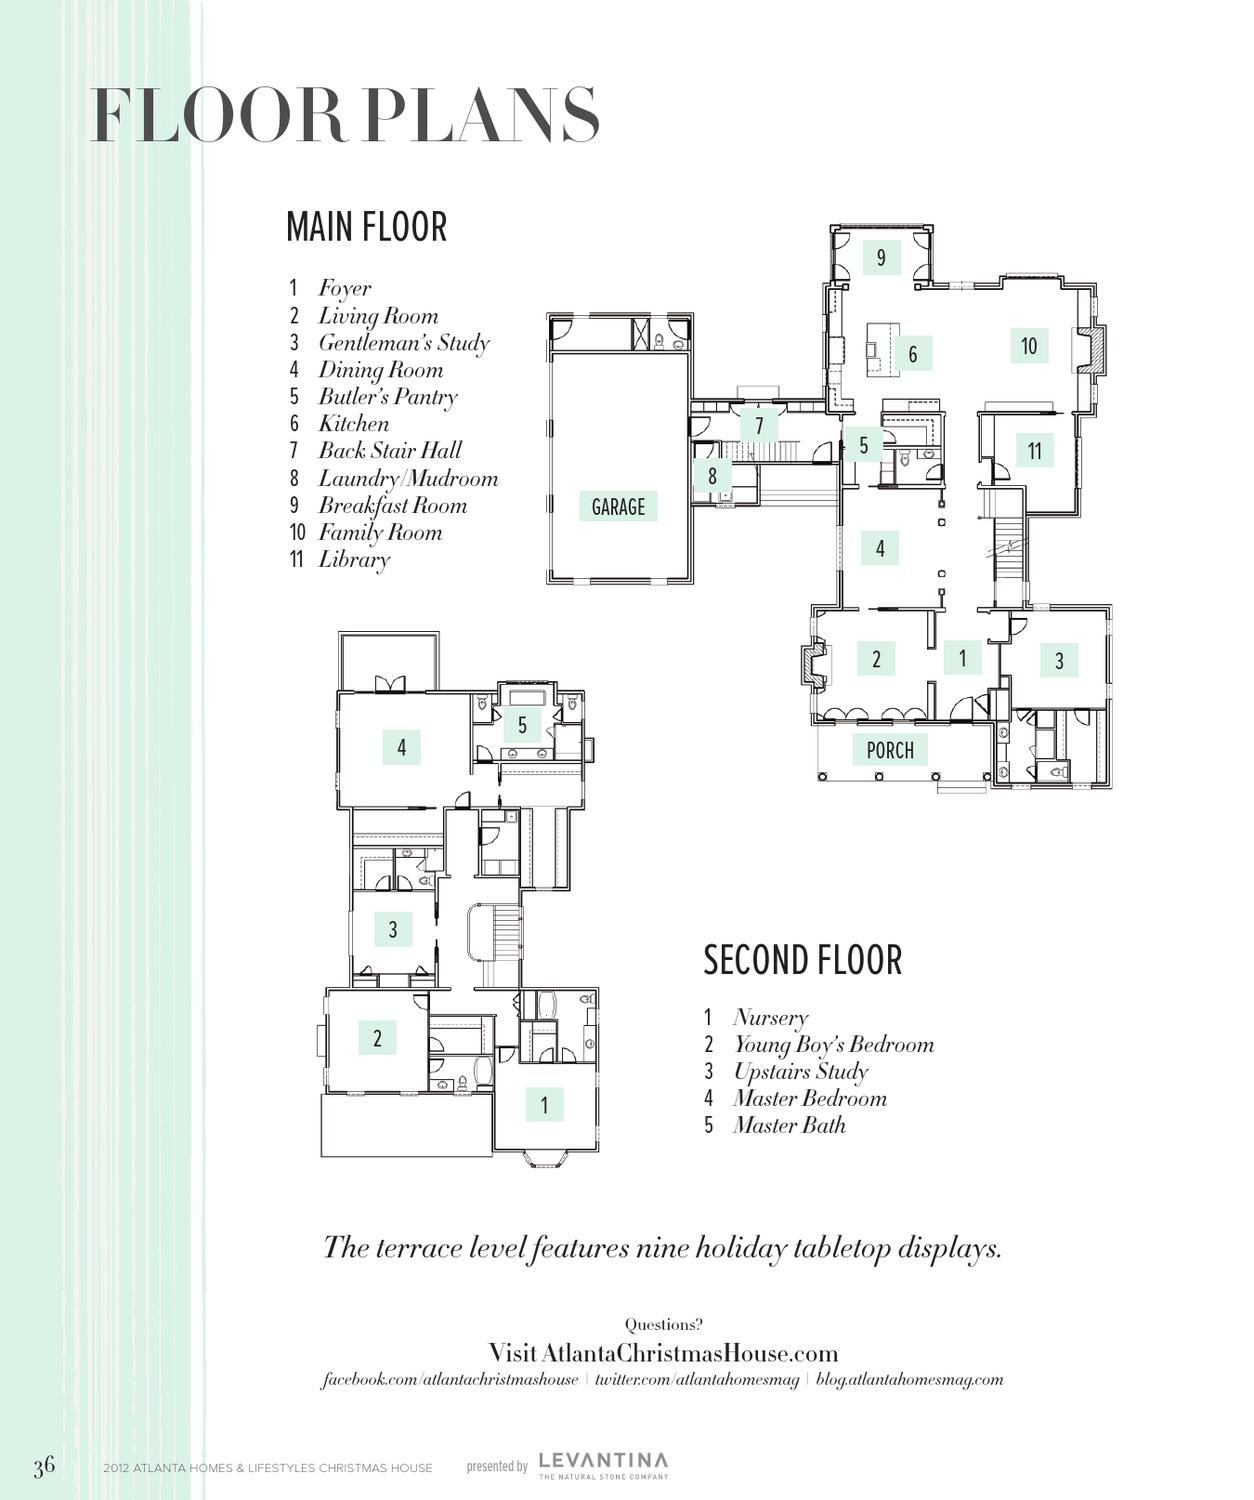 Atlanta Homes Lifestyles December Atlanta Homes House Floor Plans Luxury House Plans